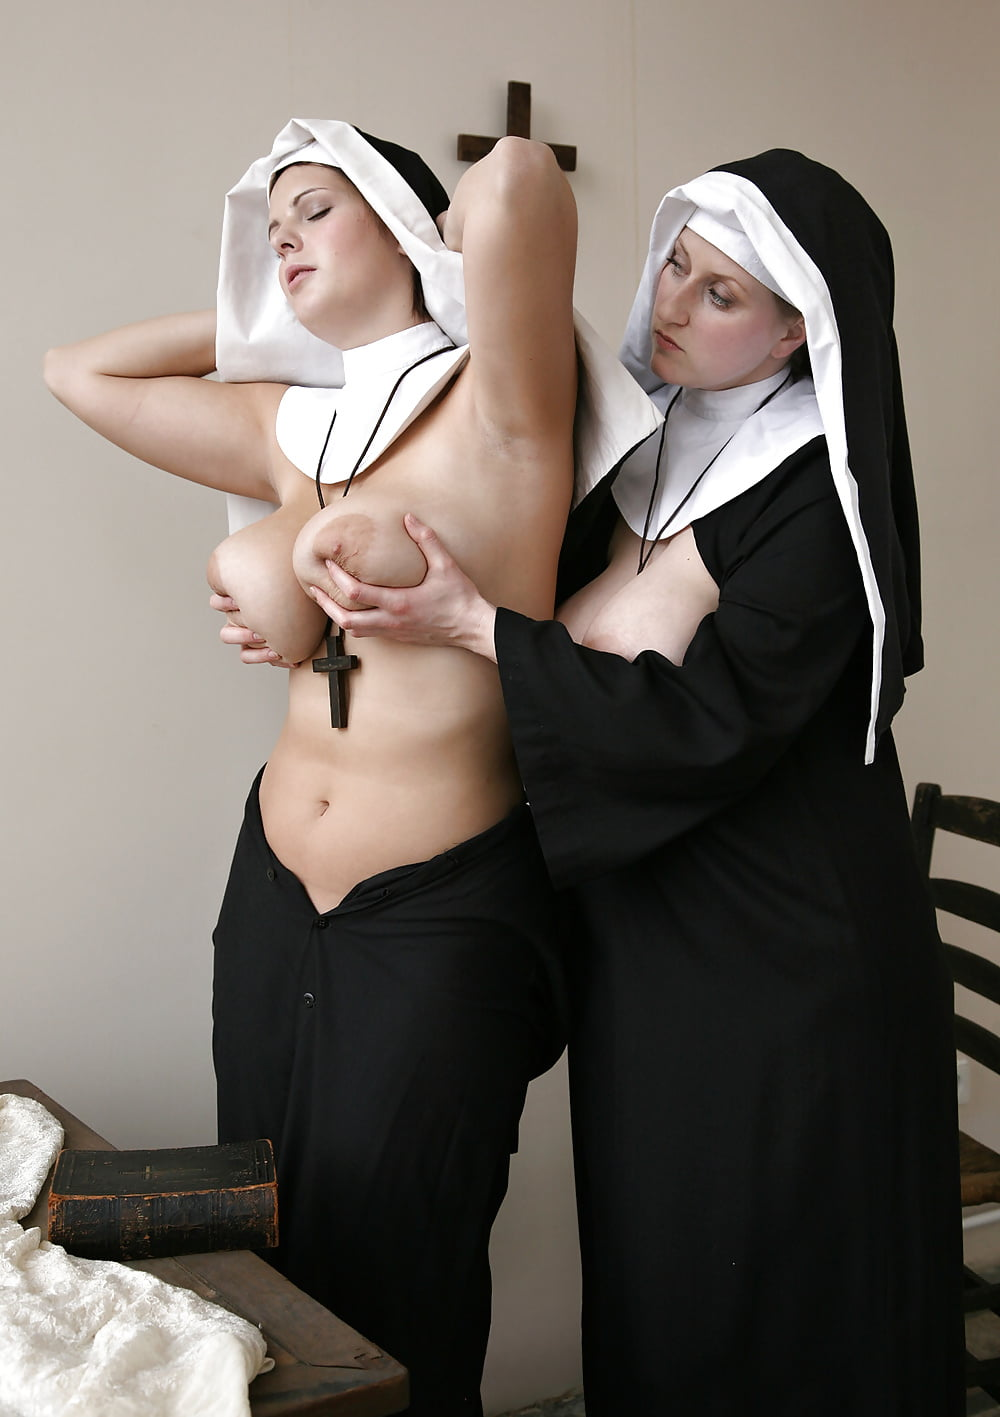 Picture of a busty nun, german mother daughter sex foto